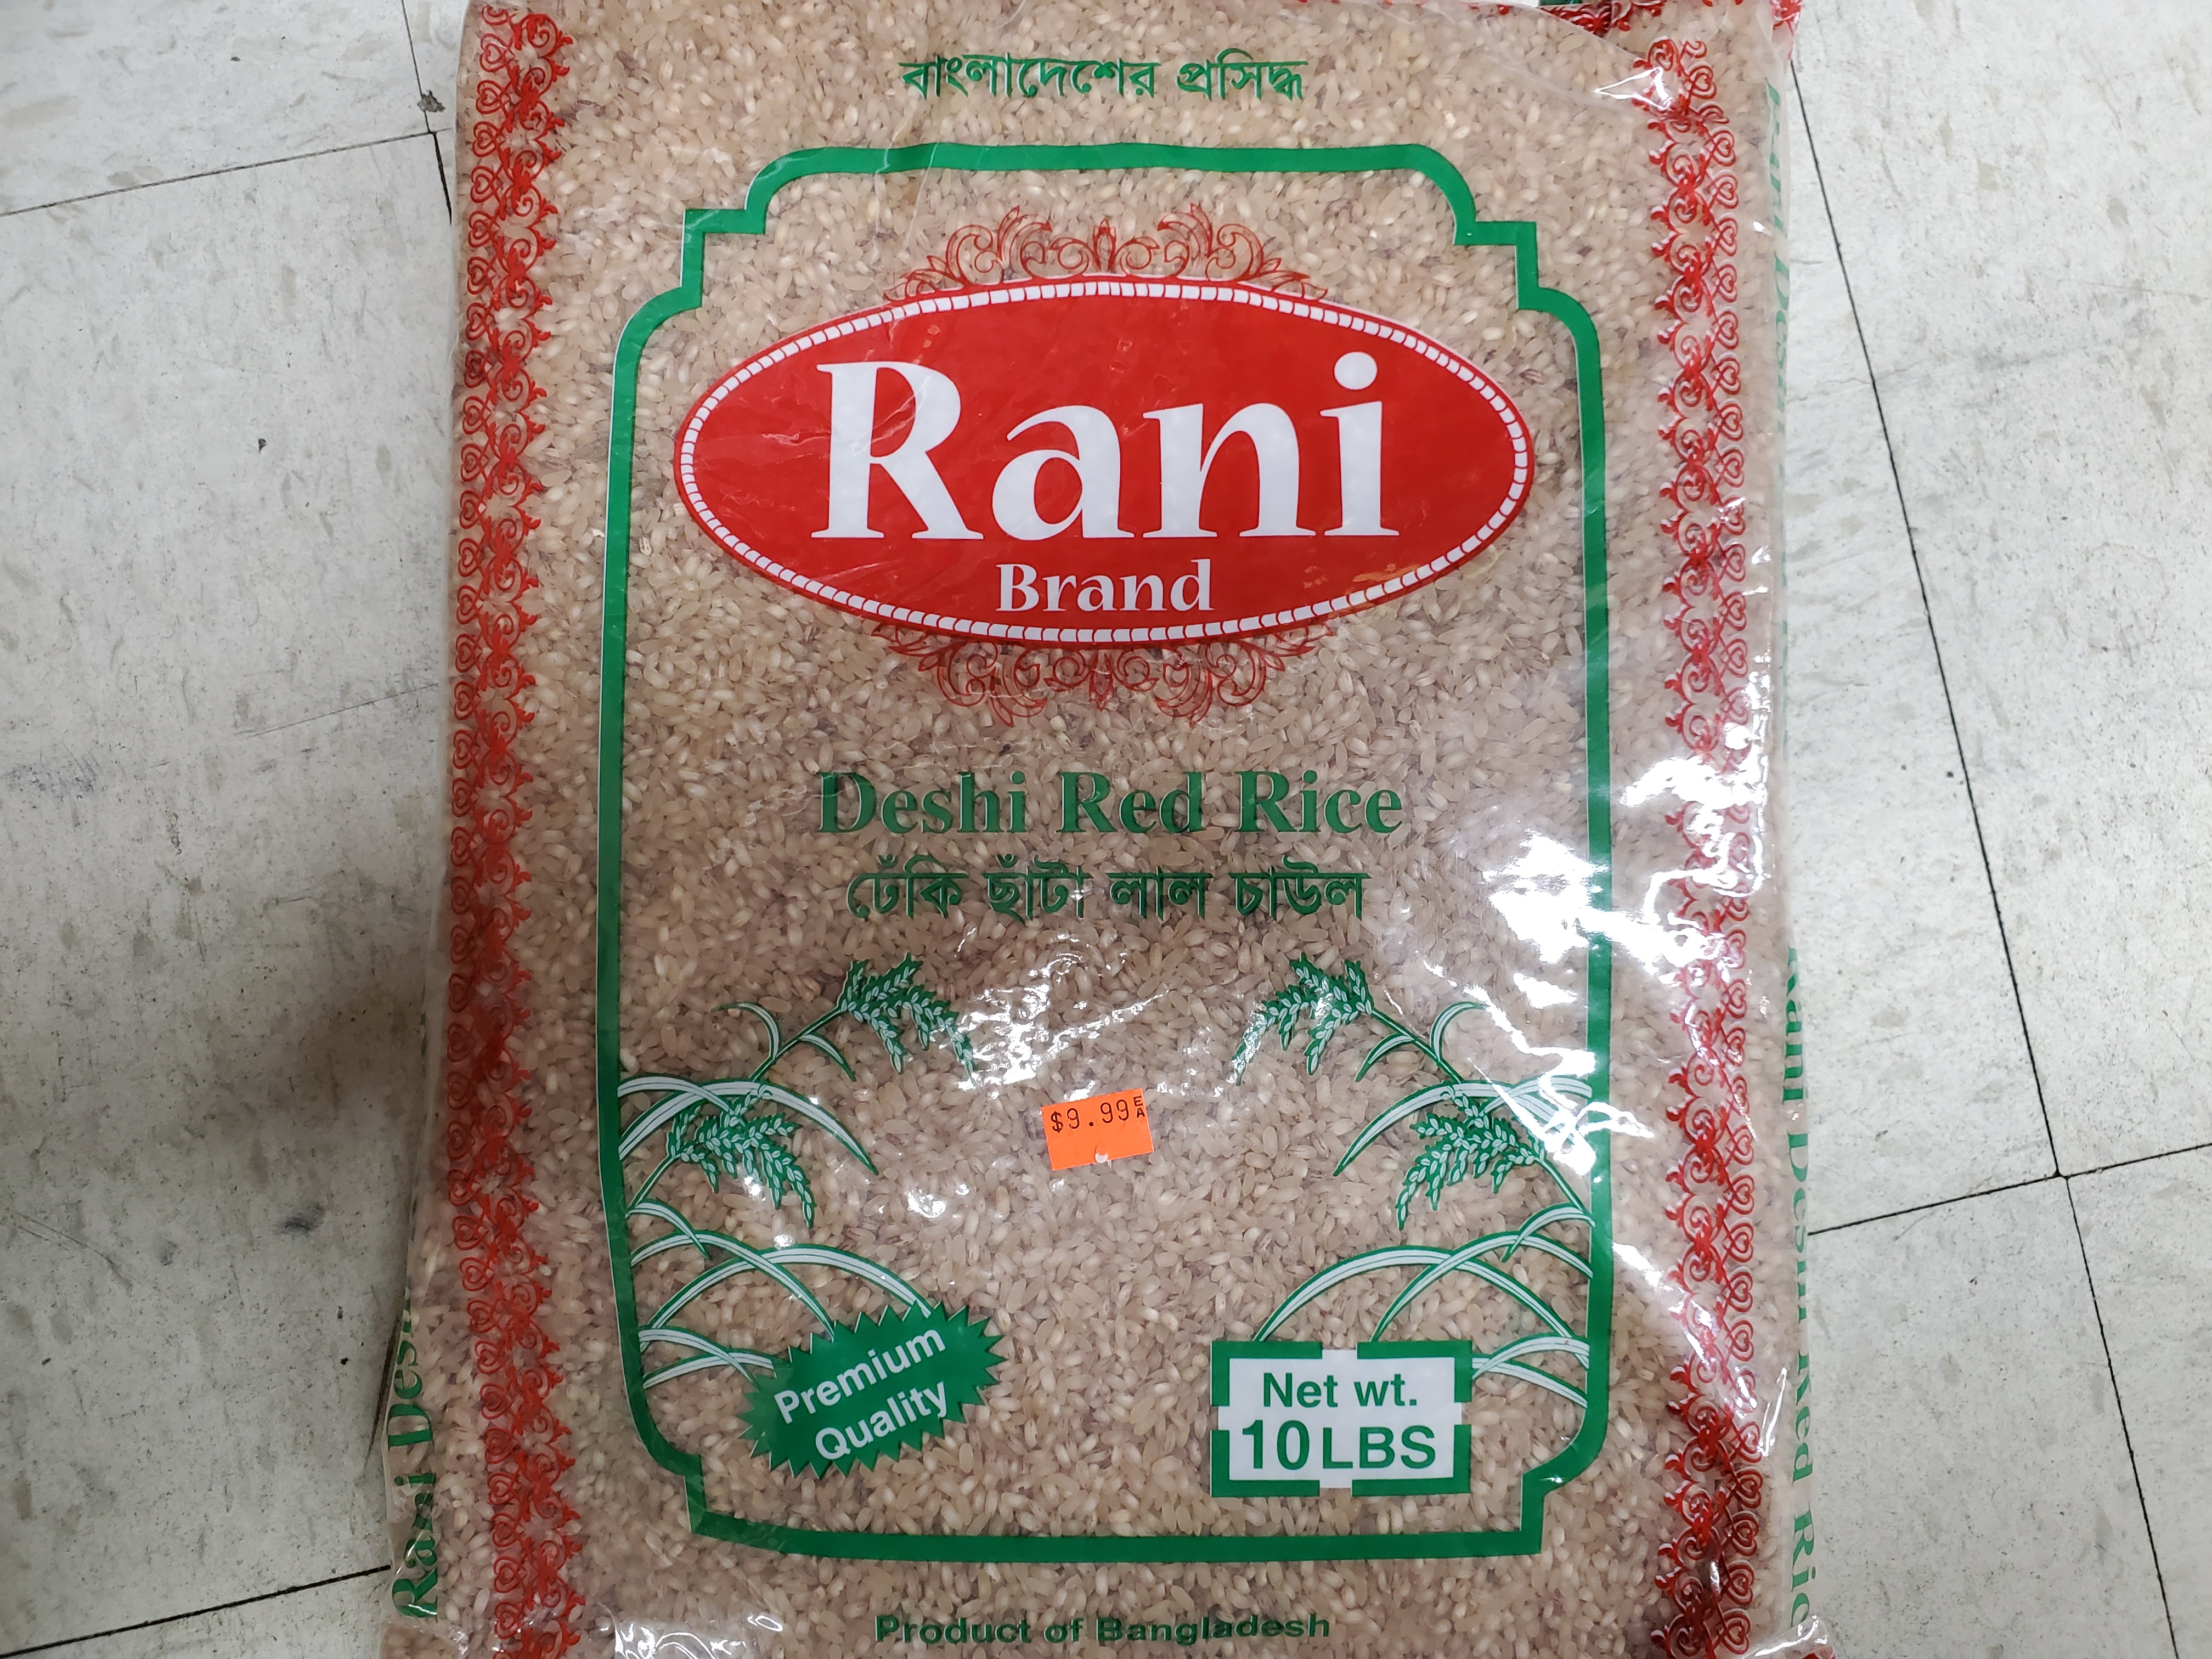 Rani Brand Deshi Red Rice 10LBS